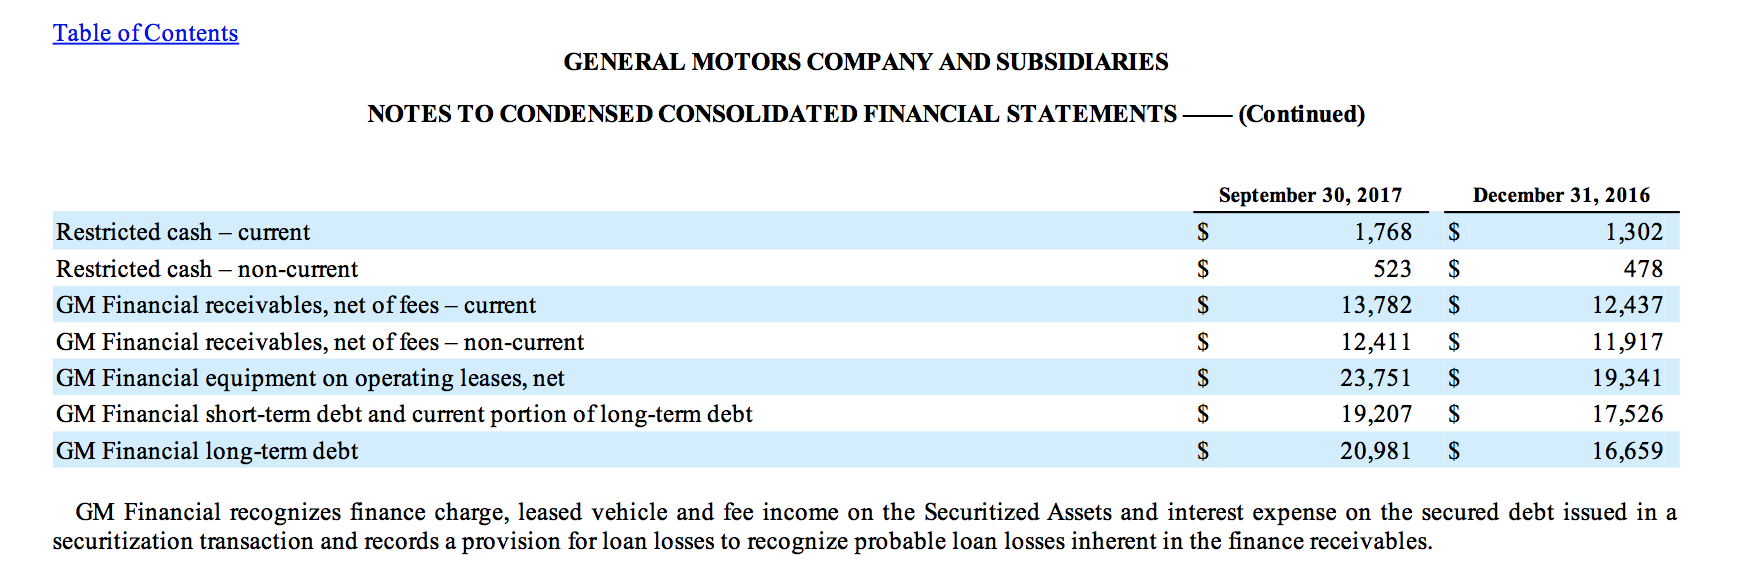 General motors financial statements 2017 for Ford motor company income statement